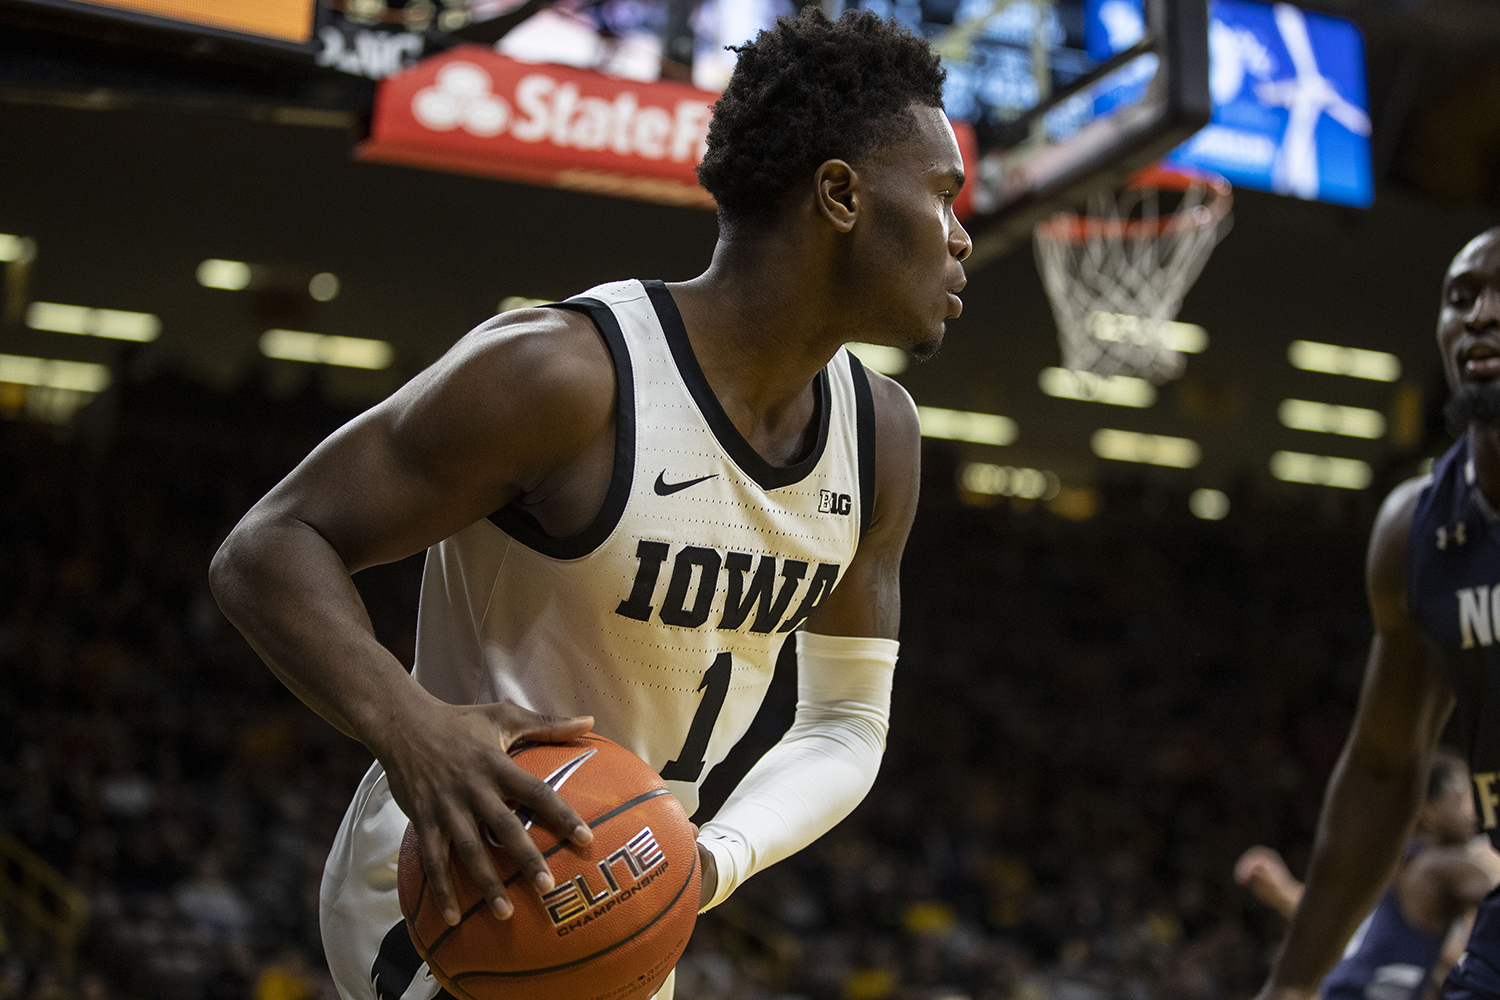 Iowa Guard Joe Toussaint throws the ball back into play during the Iowa Men's basketball game vs The University of North Florida in Carver-Hawkeye Arena on Thursday, Nov. 21, 2019. The Hawkeyes defeated the Osprey 83-68.